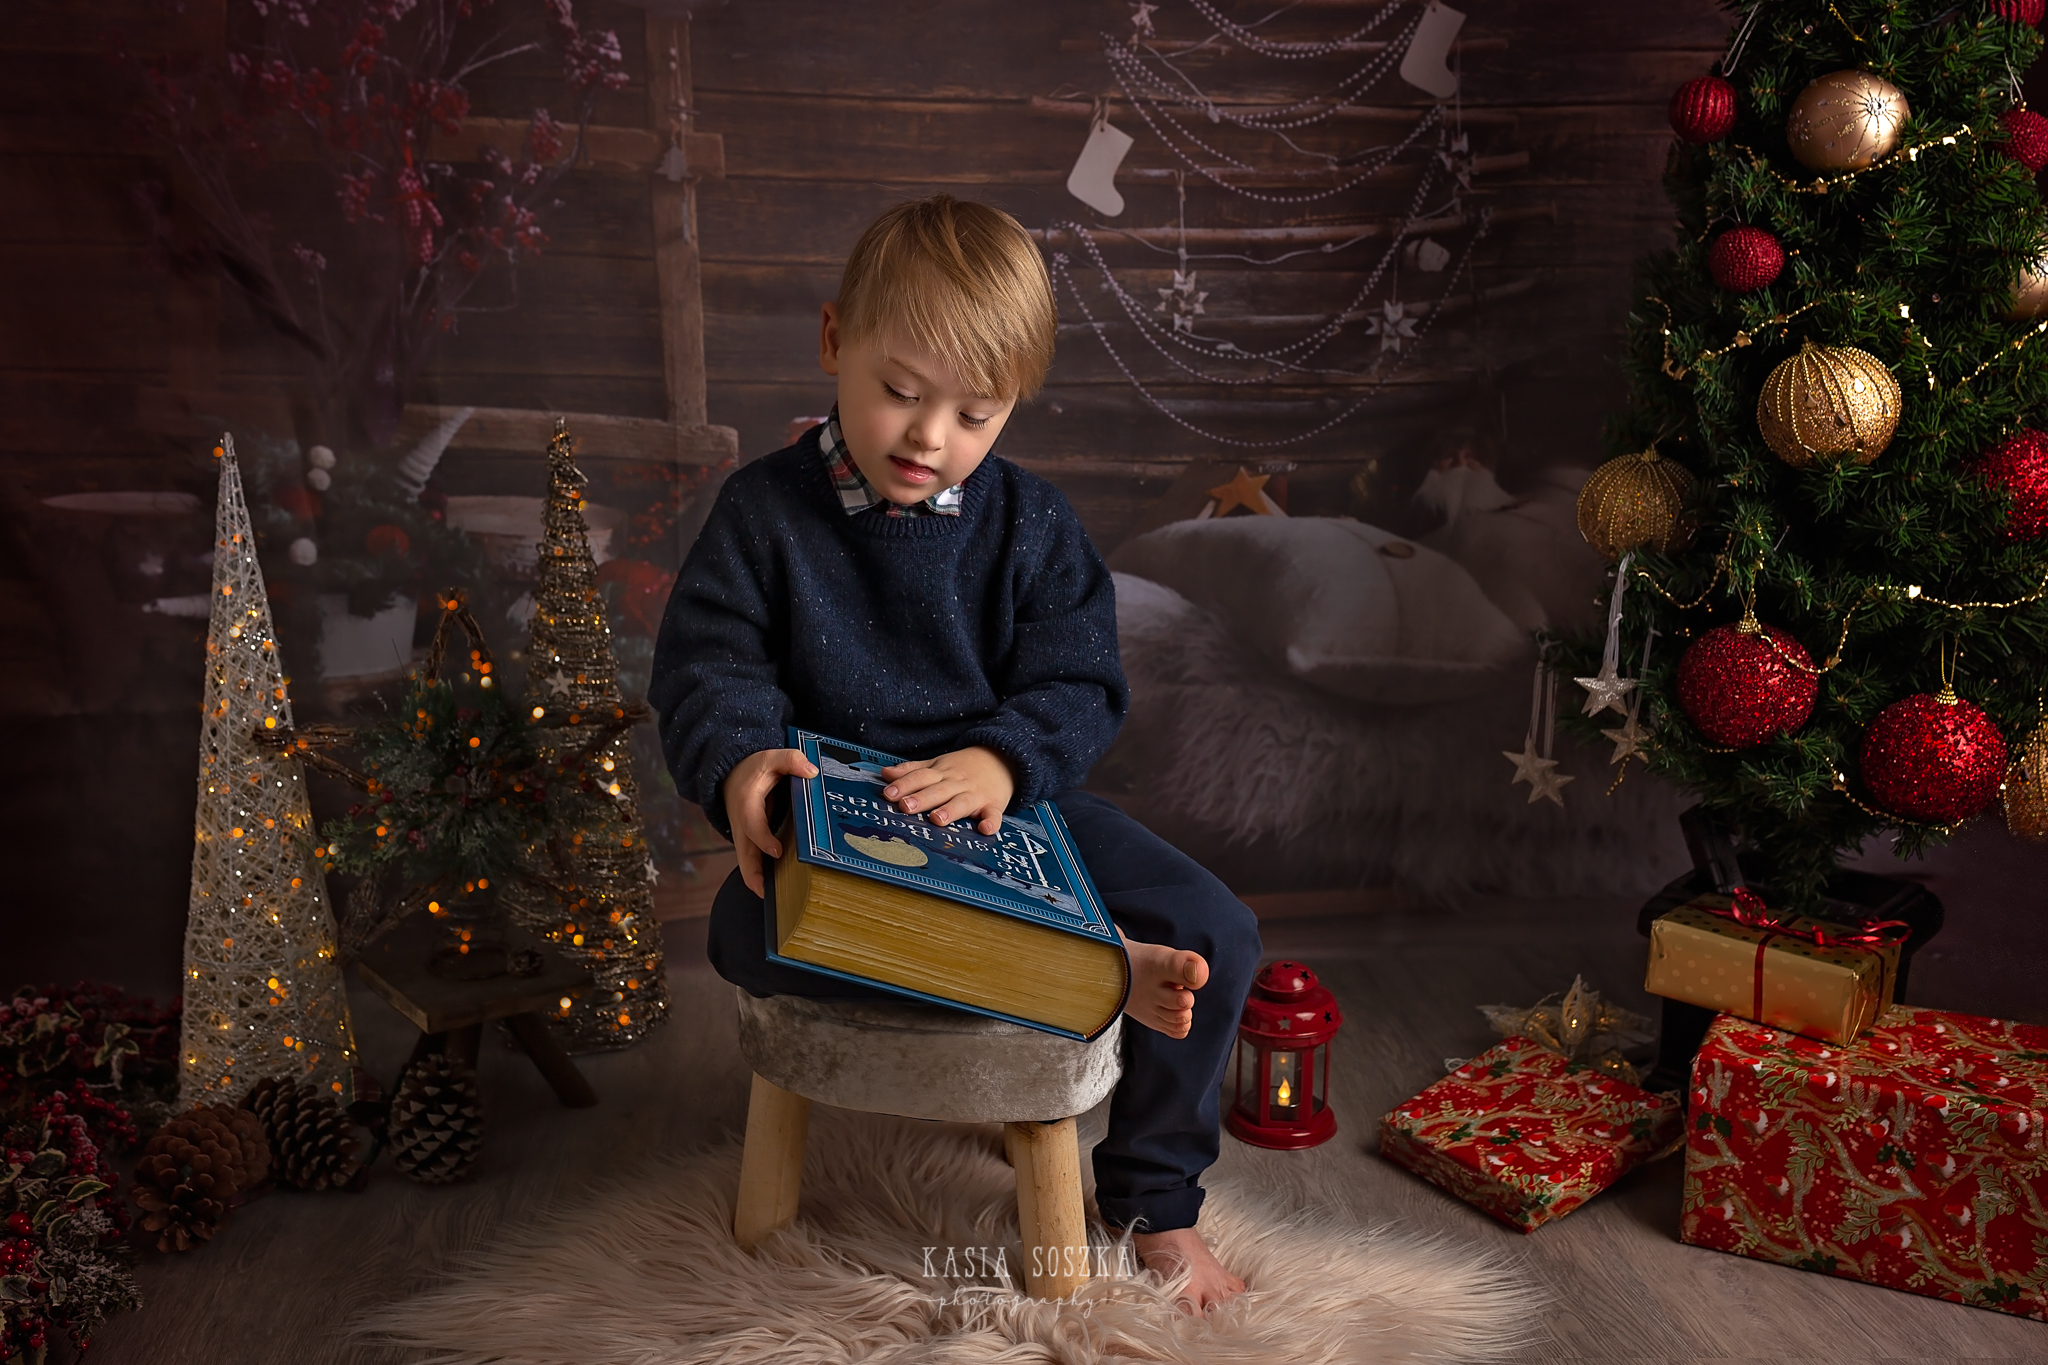 Child photographer Leeds, York, Bradford, Harrogate. Christmas Mini Sessions 2018 Leeds: adorable little boy with Christmas story book